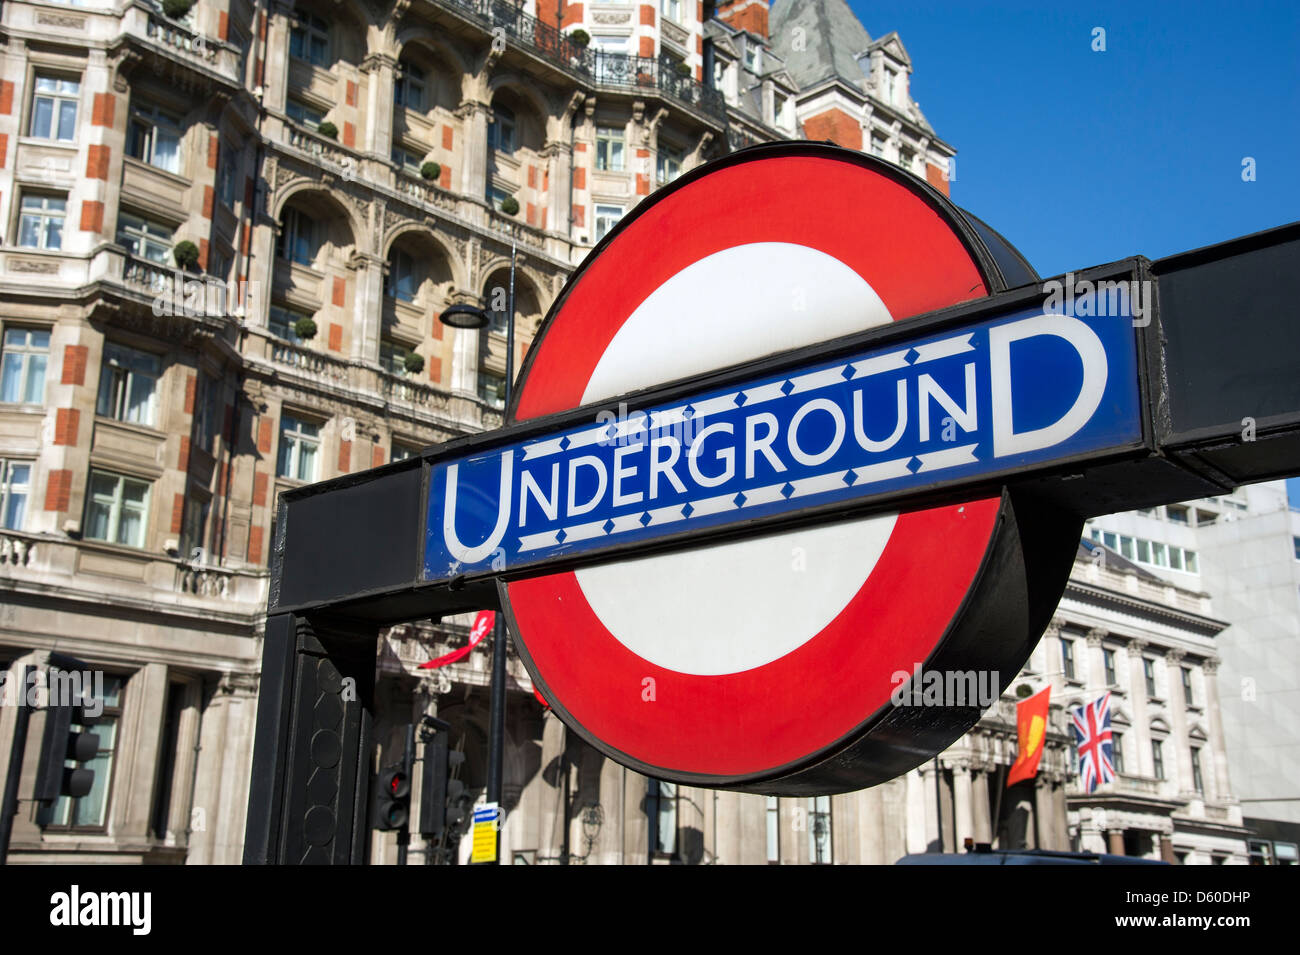 London Underground sign, UK - Stock Image